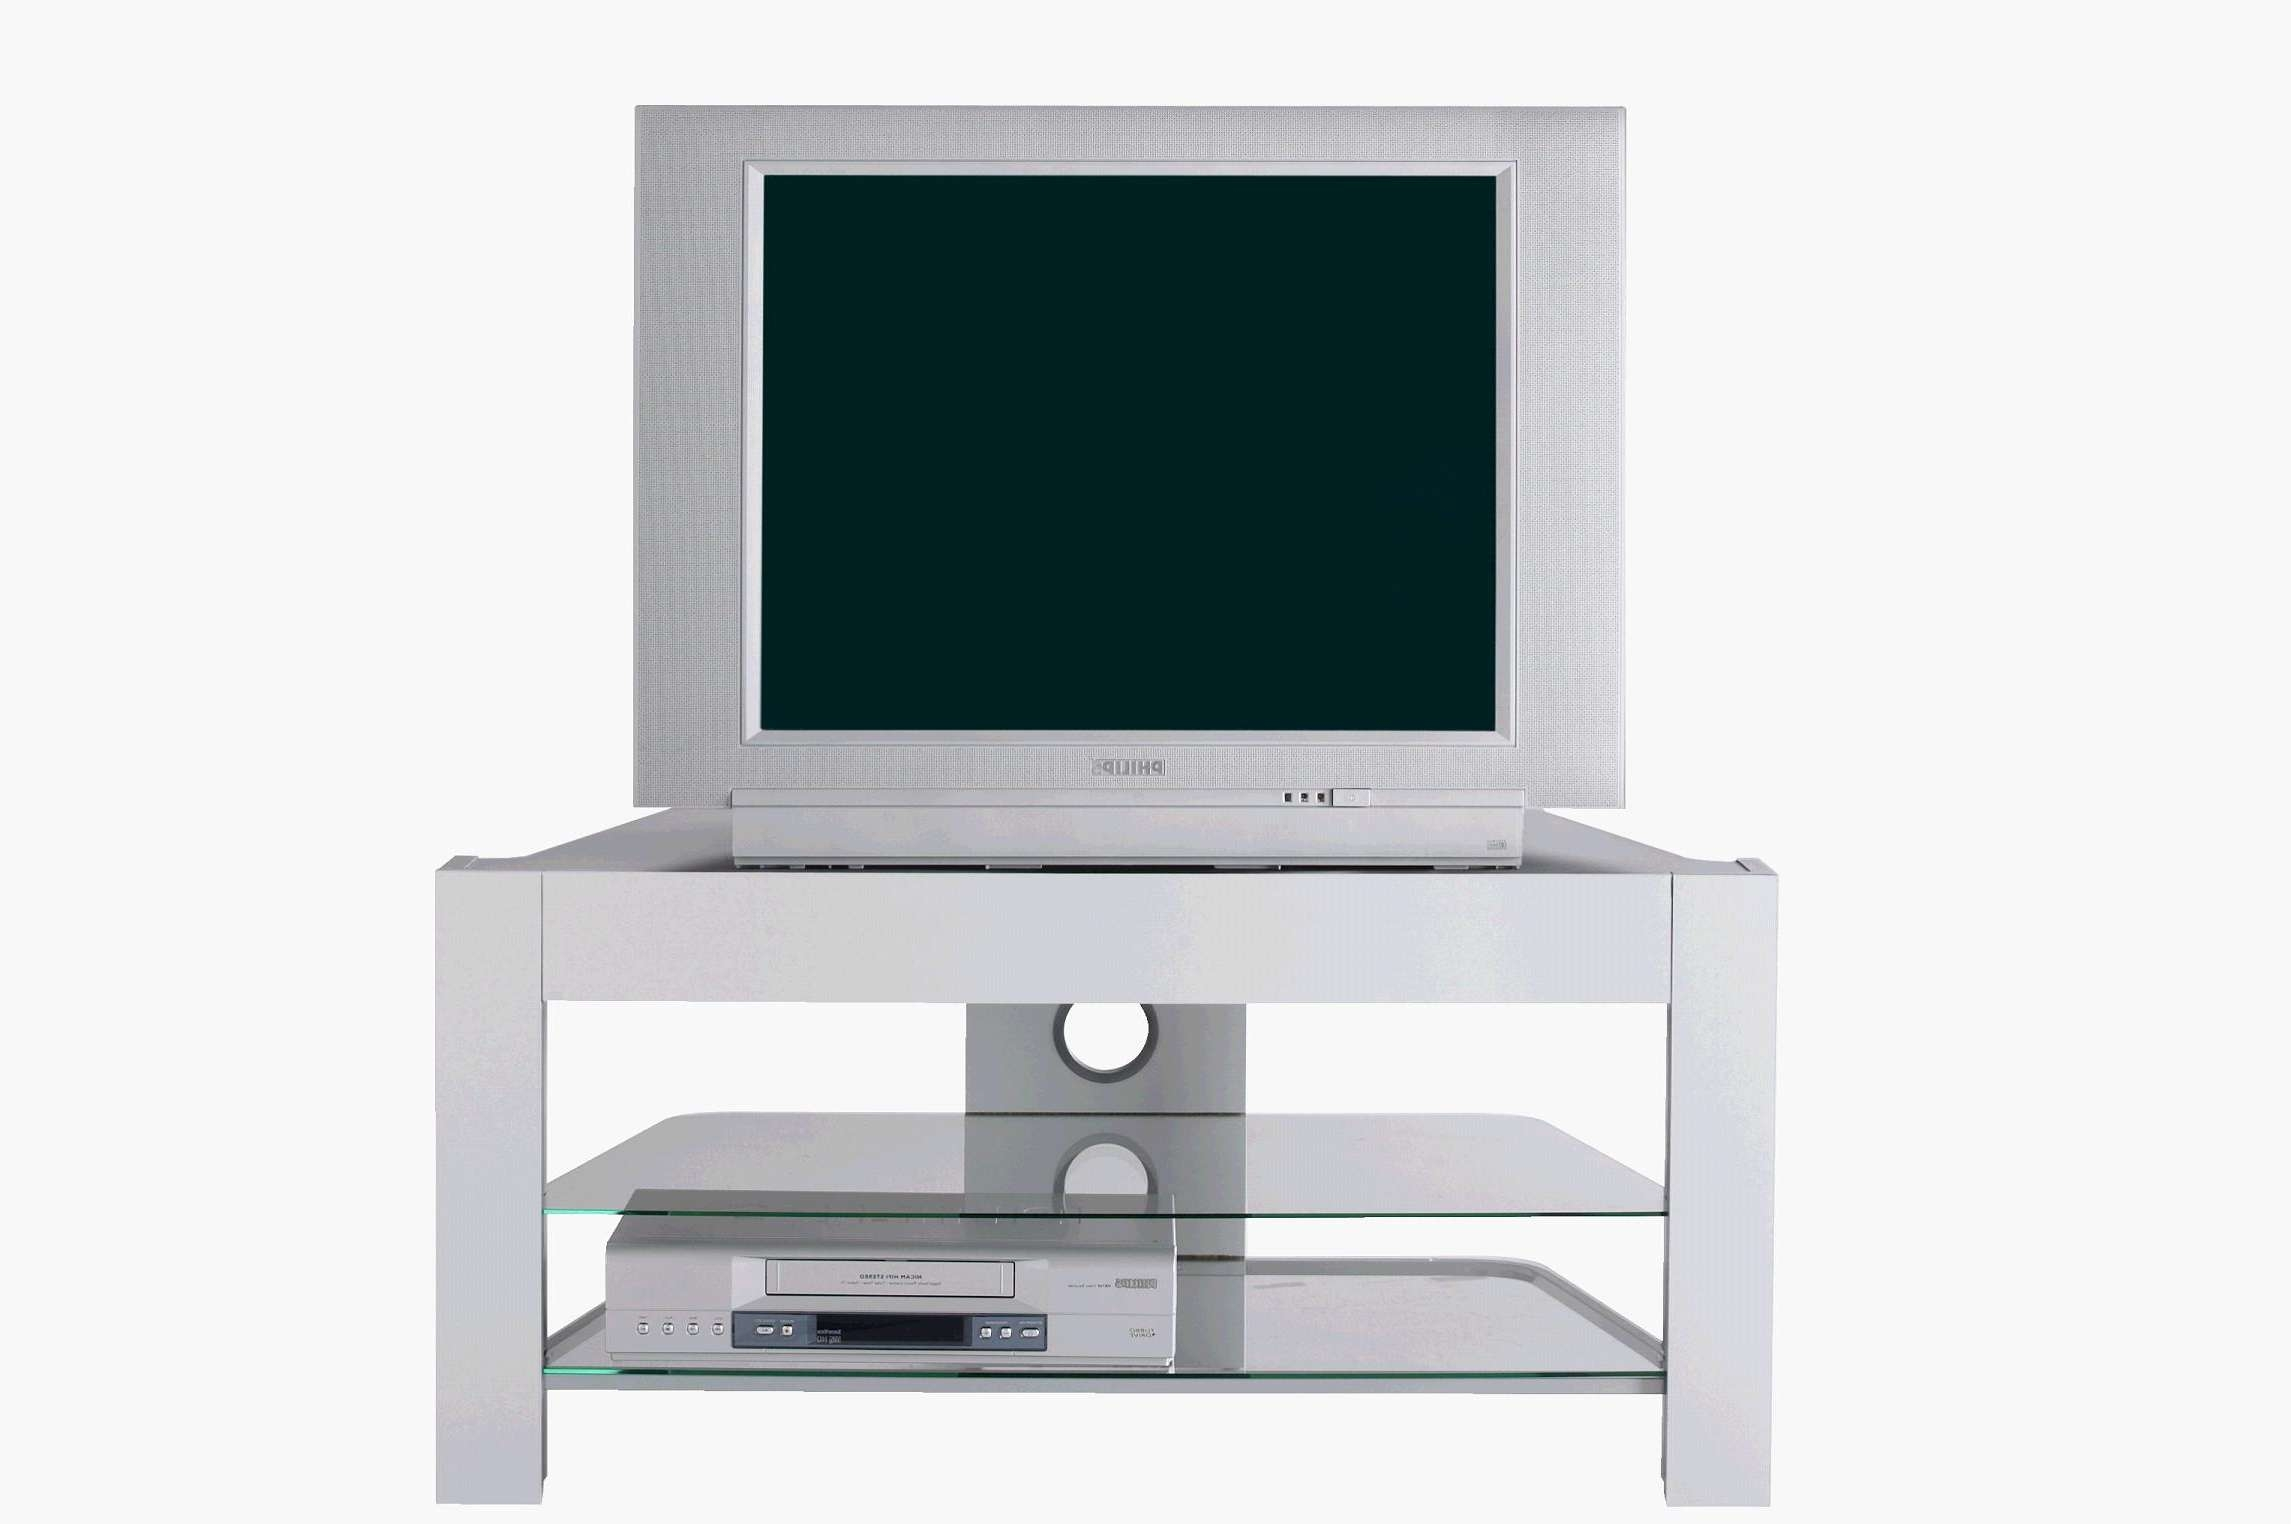 Small White Tv Stand With Mount And 2 Glass Shelf Underneath Ikea Inside Small White Tv Stands (View 9 of 15)